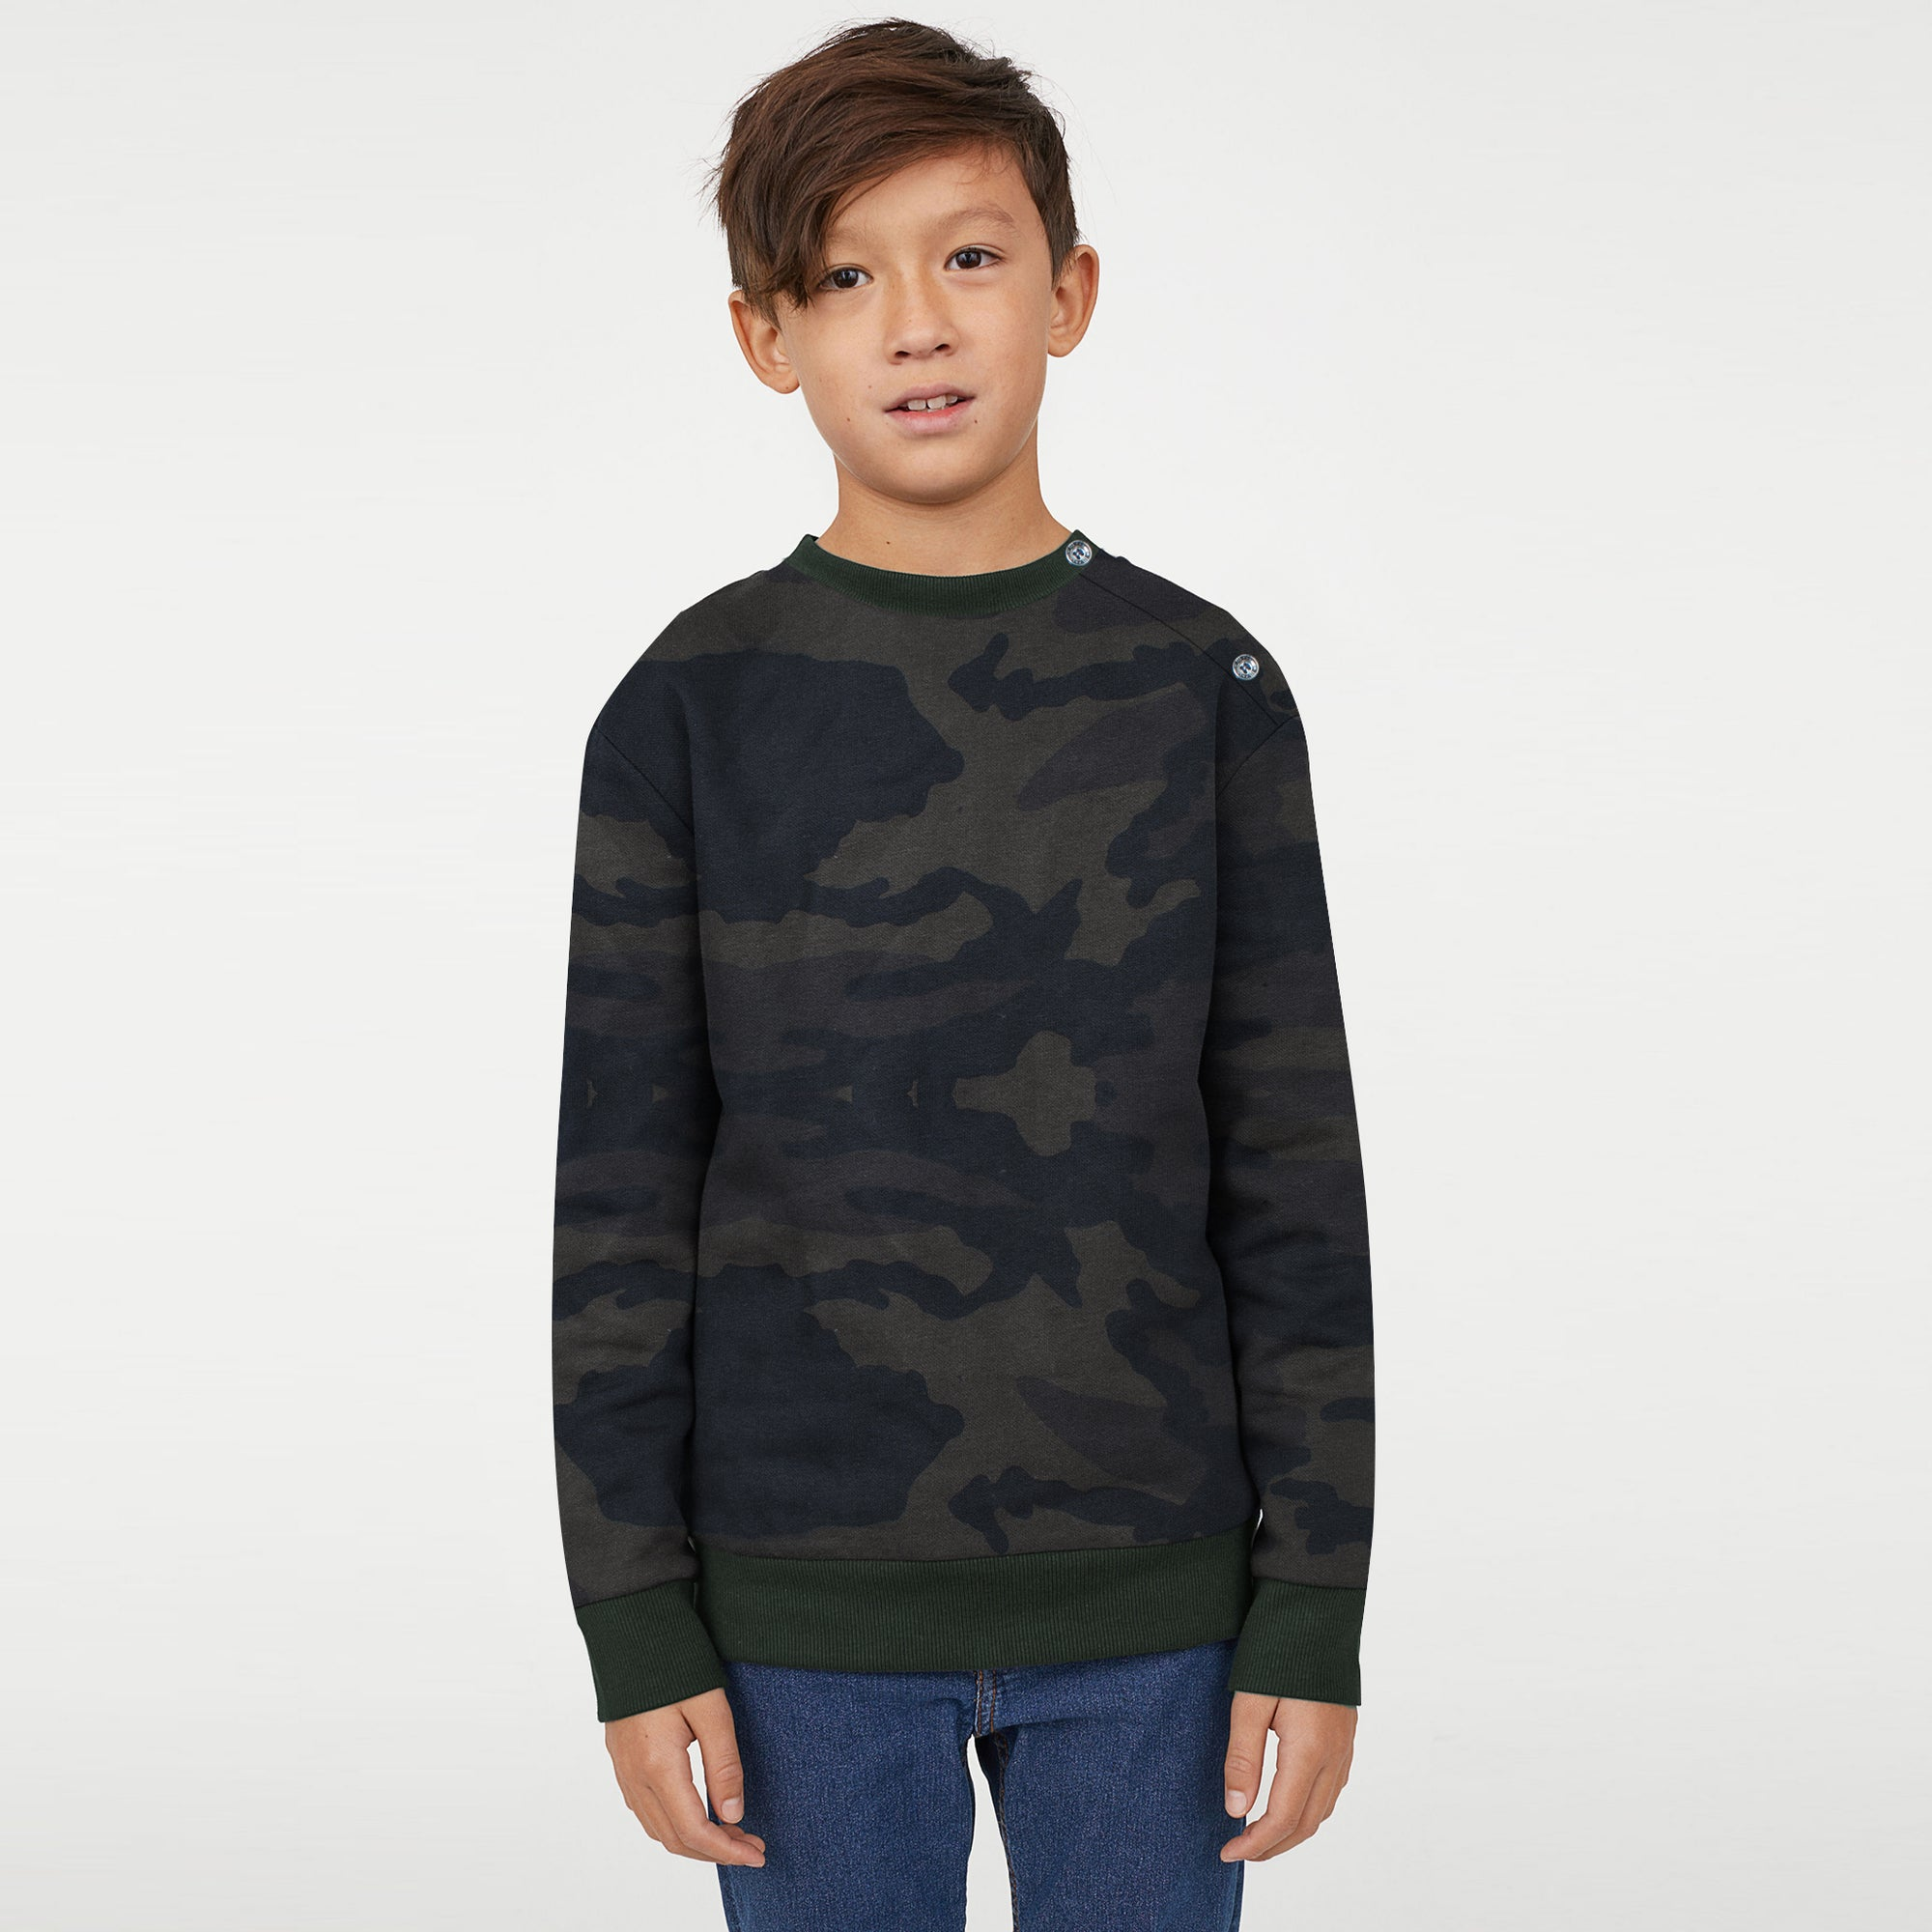 c98577e2 Tommy Hilfiger Crew Neck Fleece Sweatshirt For Kids-Camouflage-BE7217